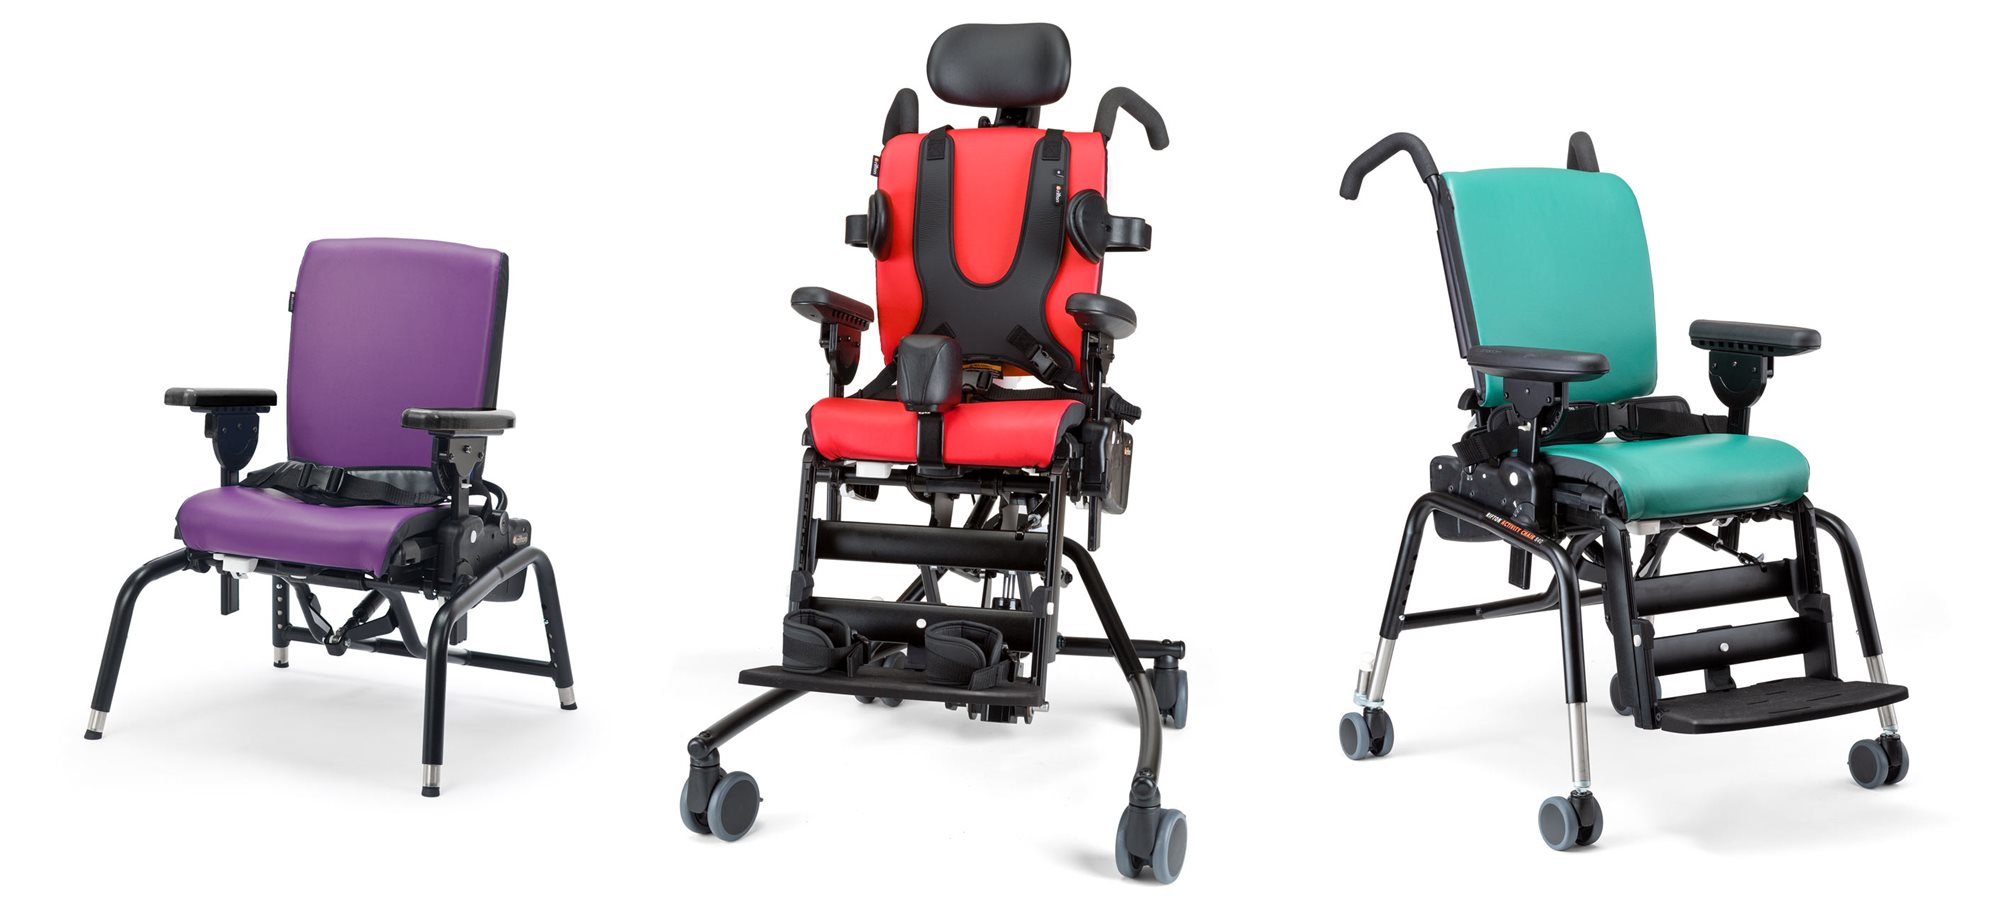 Classroom Design For Wheelchairs ~ Rifton activity chair a revolution in active seating